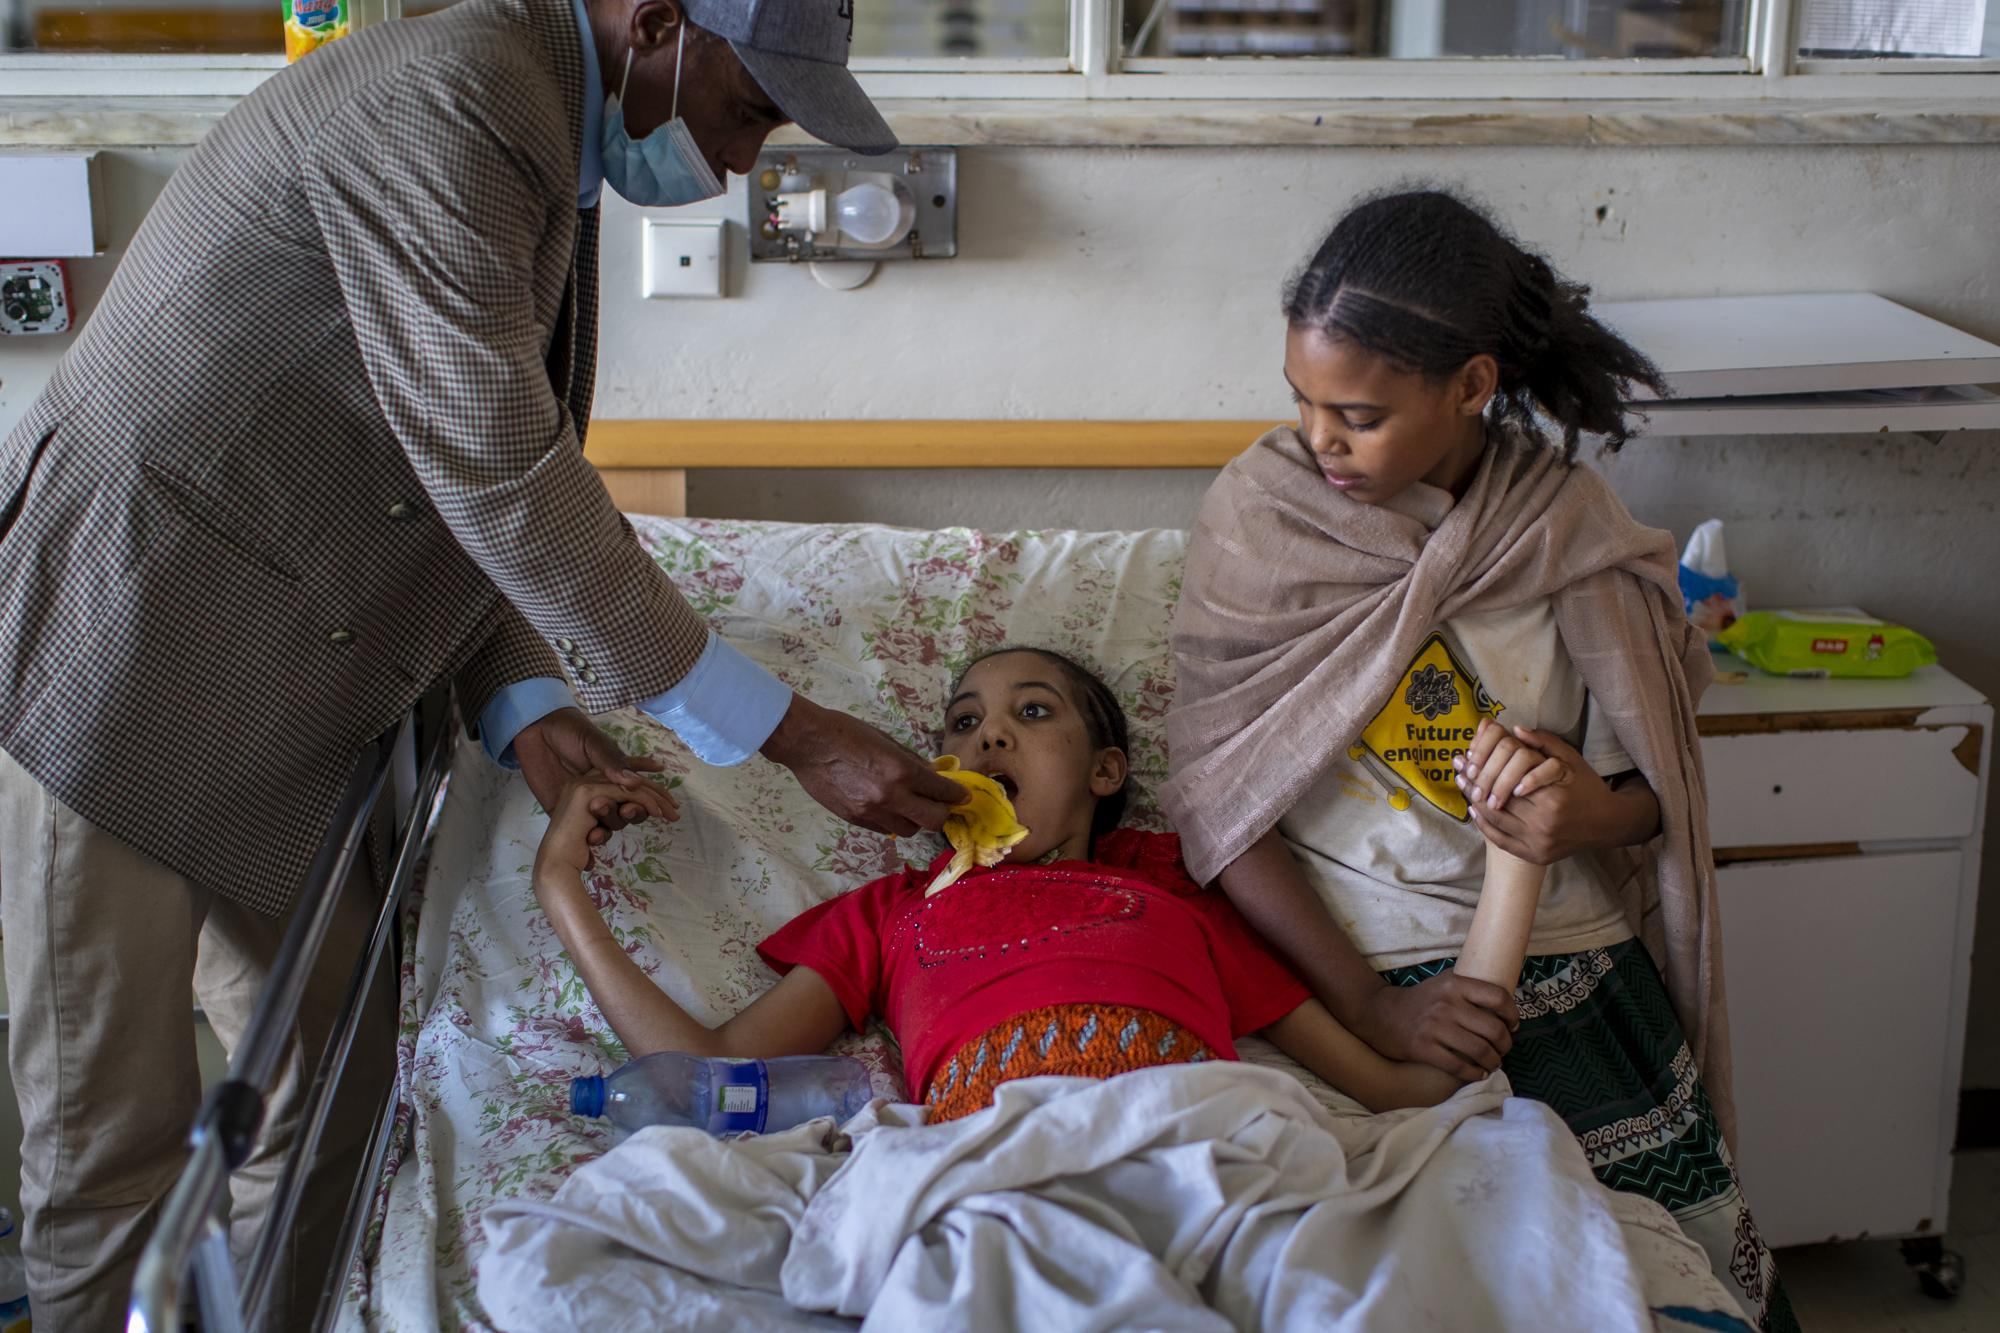 Akhberet Tadesa, 15, who is unable to feed herself and hasn't spoken or walked unaided since a shell exploding near her home left her in an apparent state of mental shock, is aided by her father Tadese Gebremedhin, left, and sister Fana, 13, right, at the Ayder Referral Hospital in Mekele, in the Tigray region of northern Ethiopia, on Thursday, May 6, 2021. As the Tigray People's Liberation Front and the government forces fight, civilians, and especially children, are suffering heavily. (AP Photo/Ben Curtis)